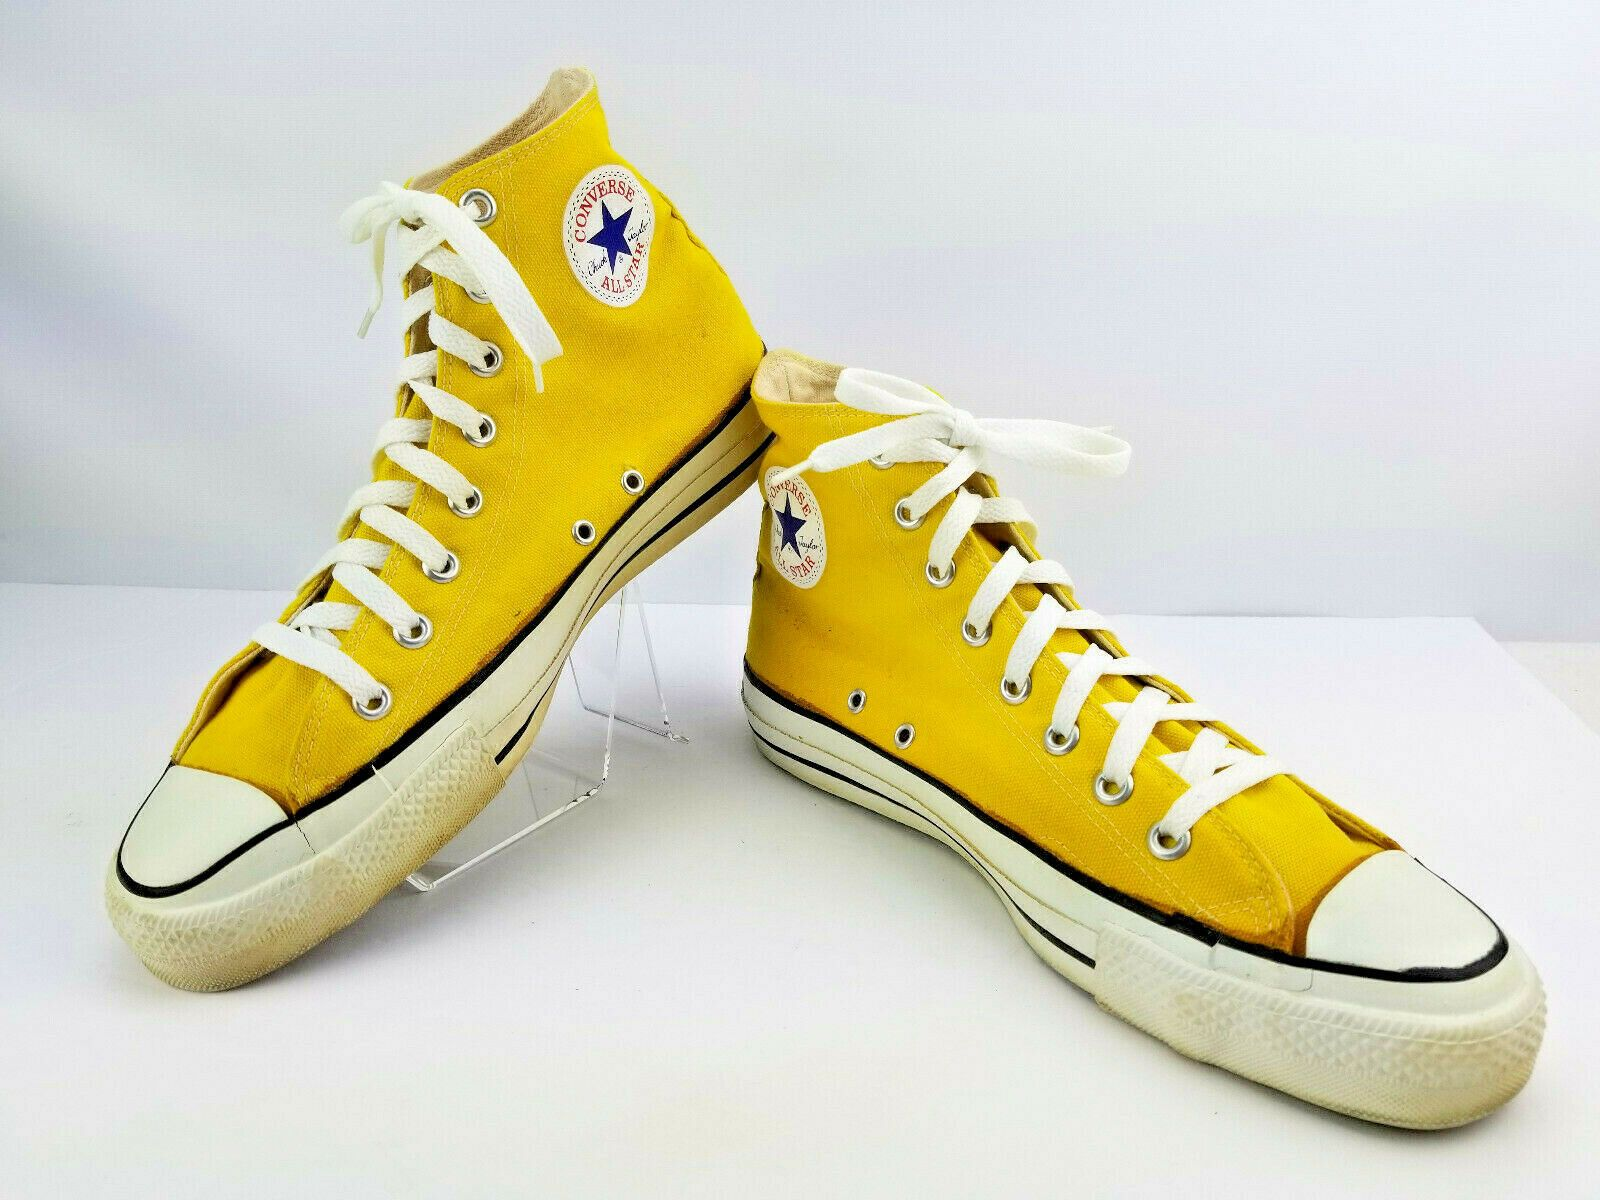 Yellow Converse Chuck Taylor High Tops<3 | Yellow converse